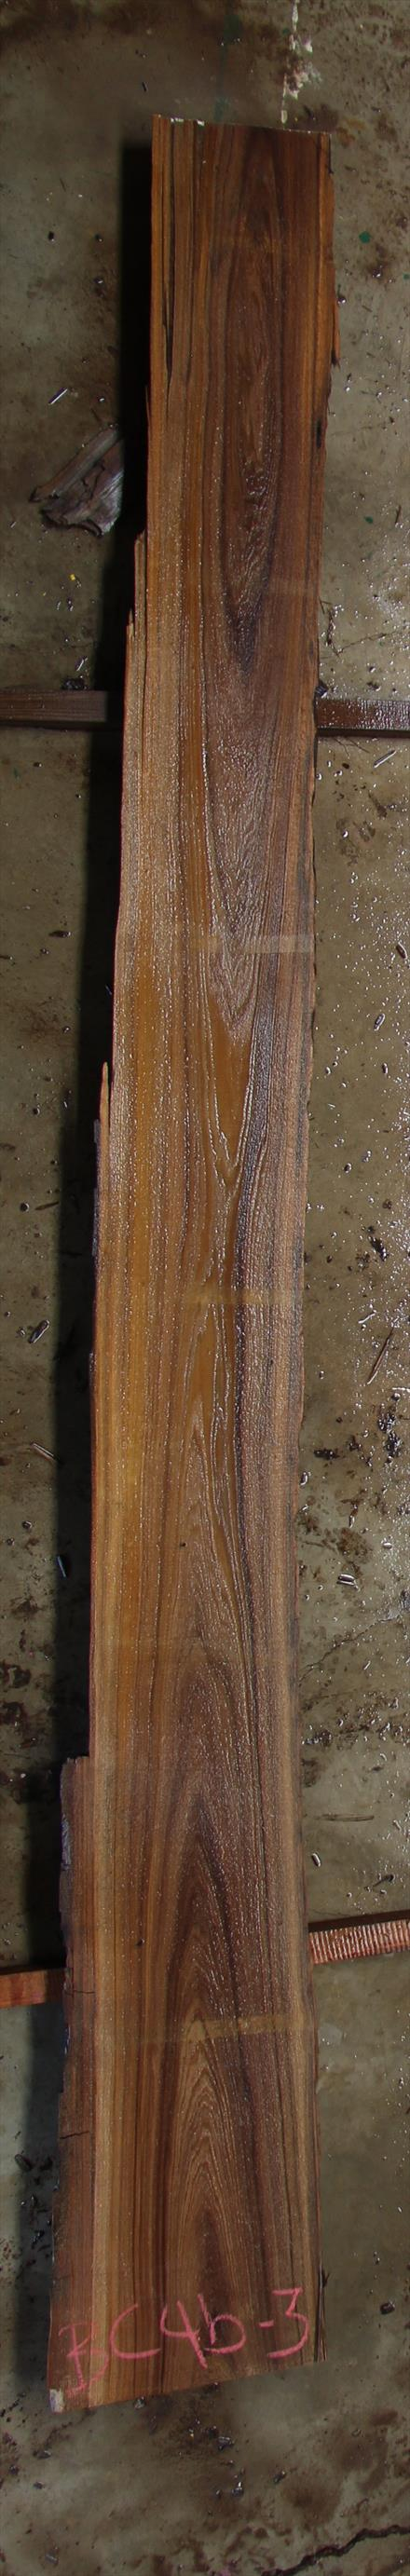 Buried Cypress Slab BC004b-03